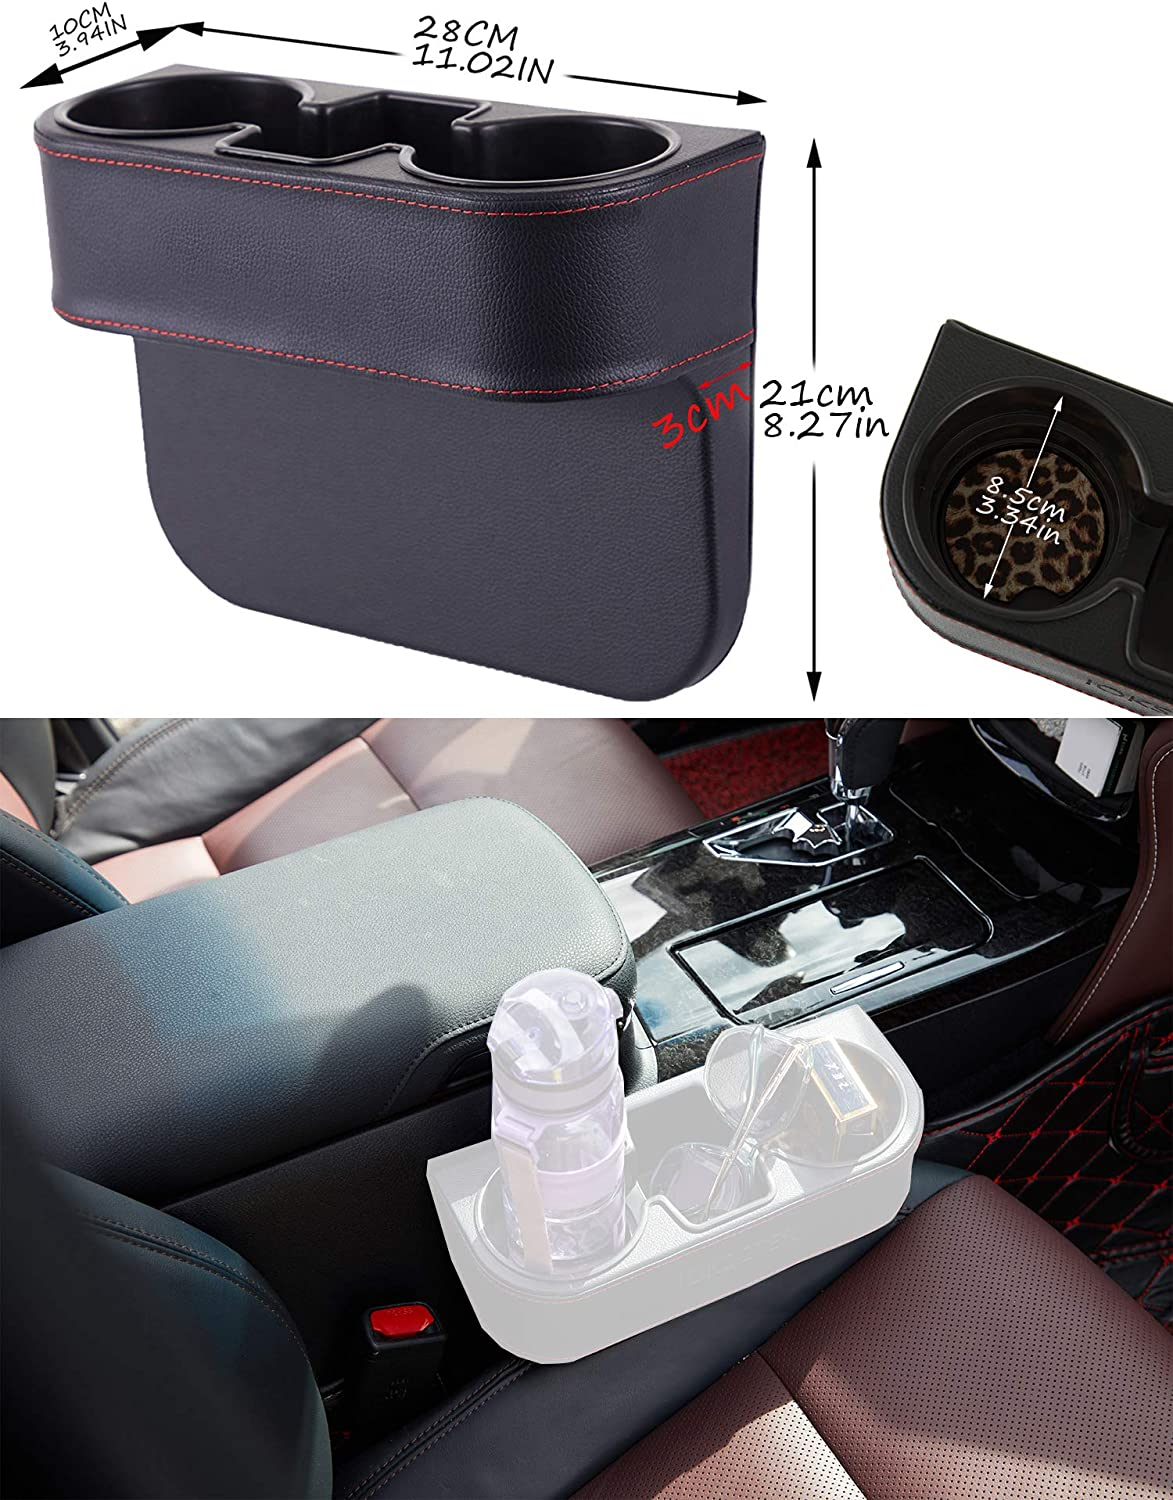 IOKSCTER Multifunctional Car Seat Organizer with PU Leather,Front Between Seat Gap Filler,Seat Cup Cell Phone Drinks Holder Glove Box Car Interior Organizer Trunk SUV Black